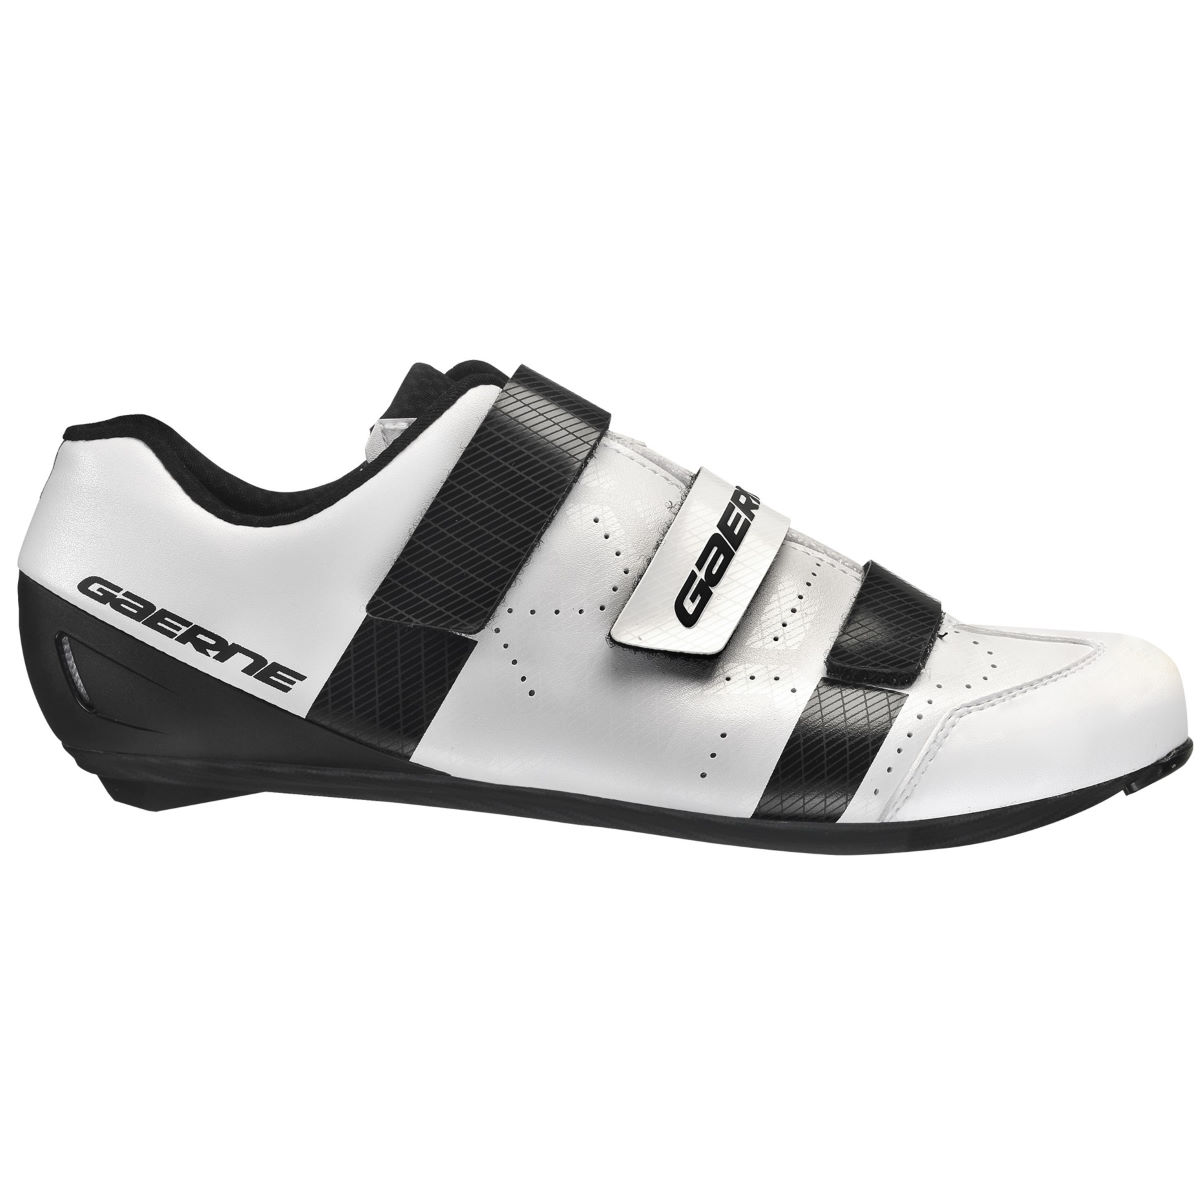 Gaerne-Record-Road-Shoes-41-White-Cycling-Shoes